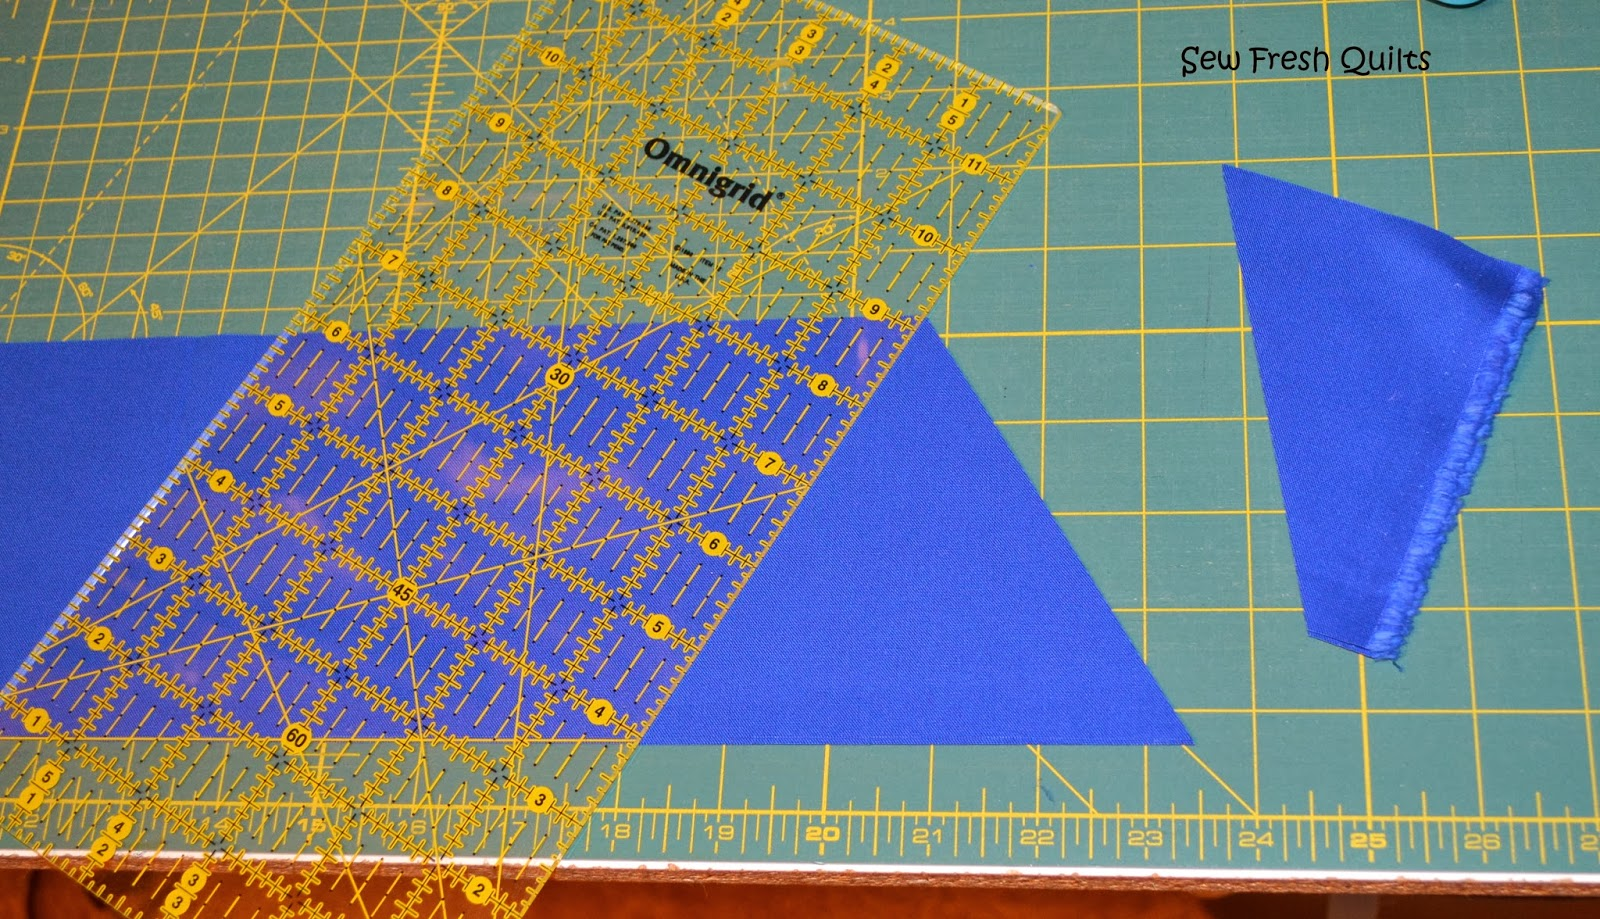 Sew Fresh Quilts: Equilateral Triangle Quilt Tutorial